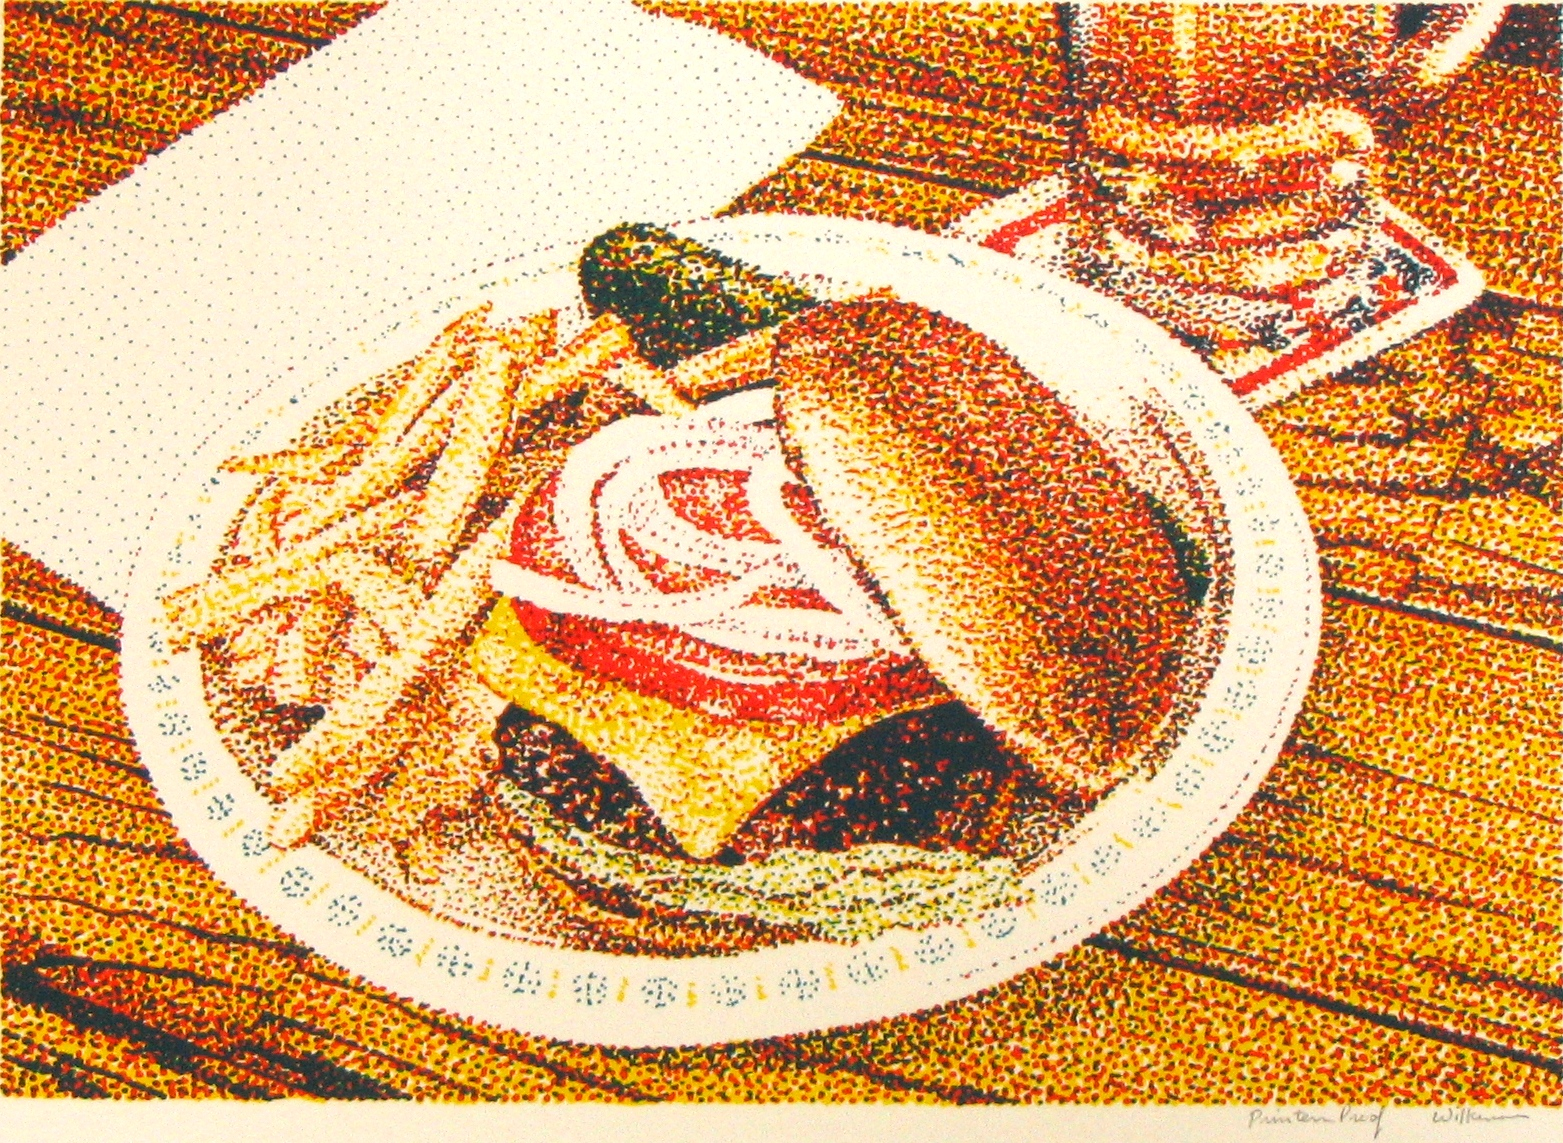 Jerry Wilkerson Art - Pointillism - inspired by food